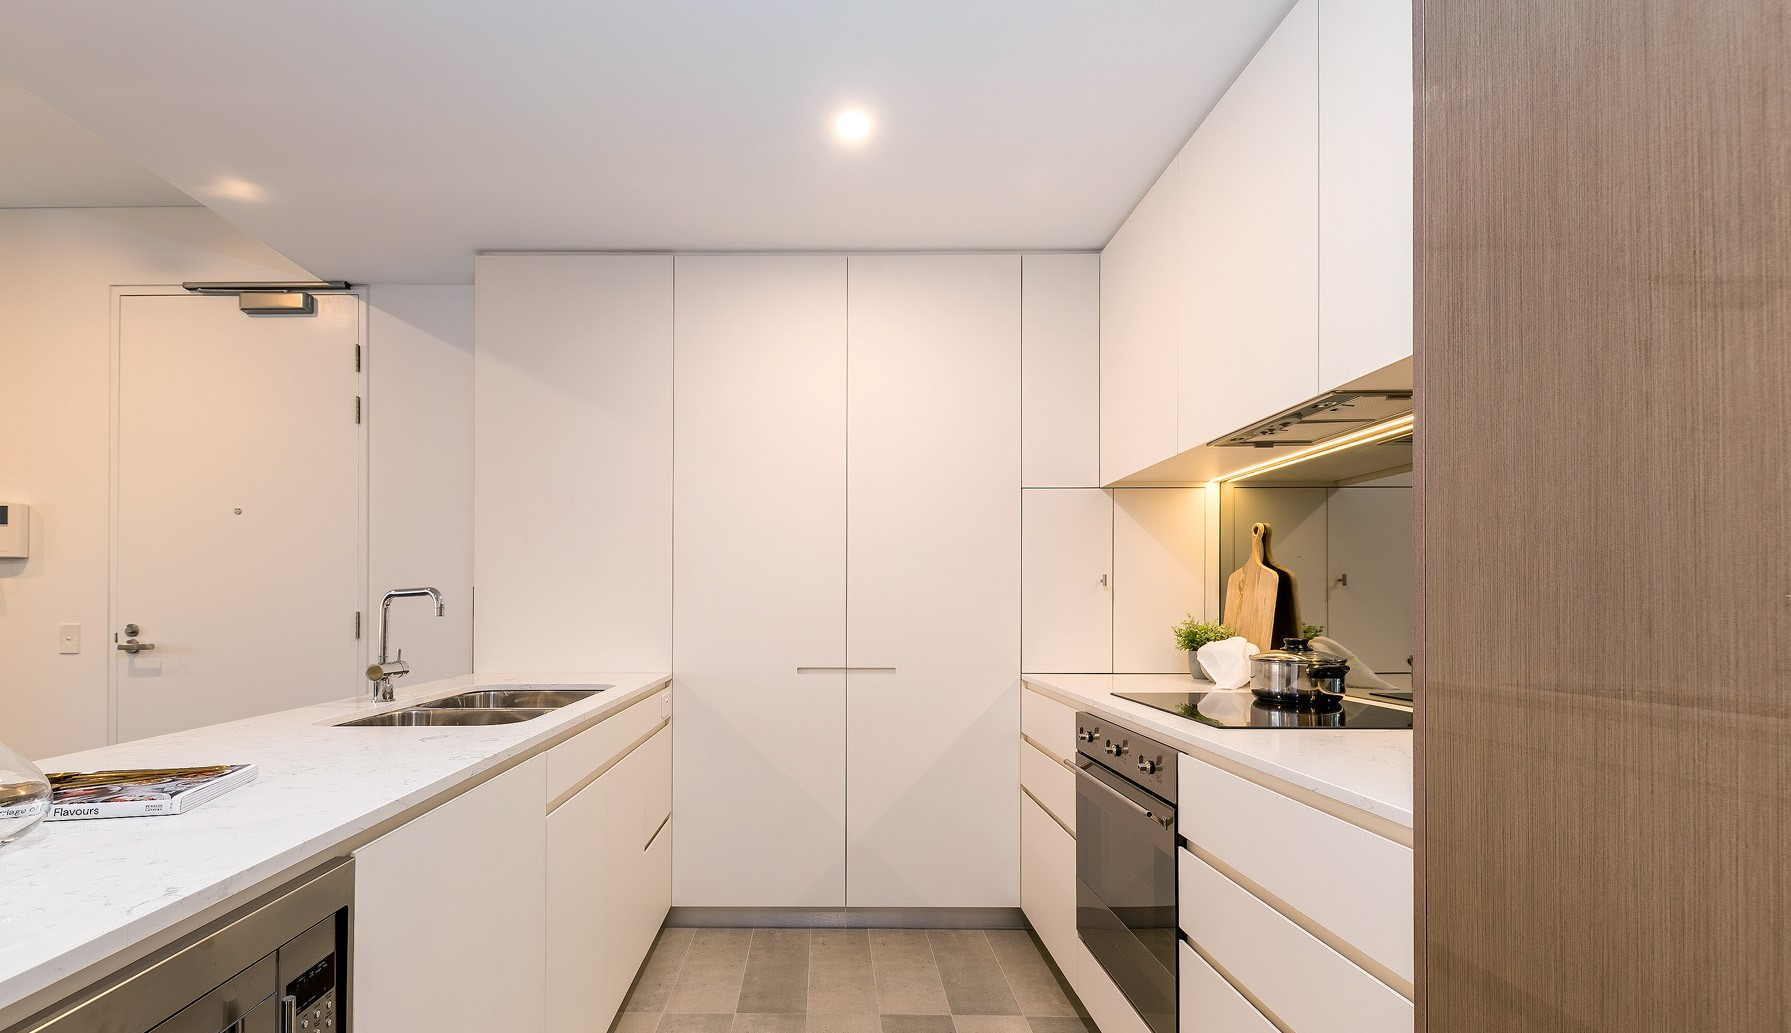 Sink at Riverside Parade Apartments by Fraser, Centre, Perth